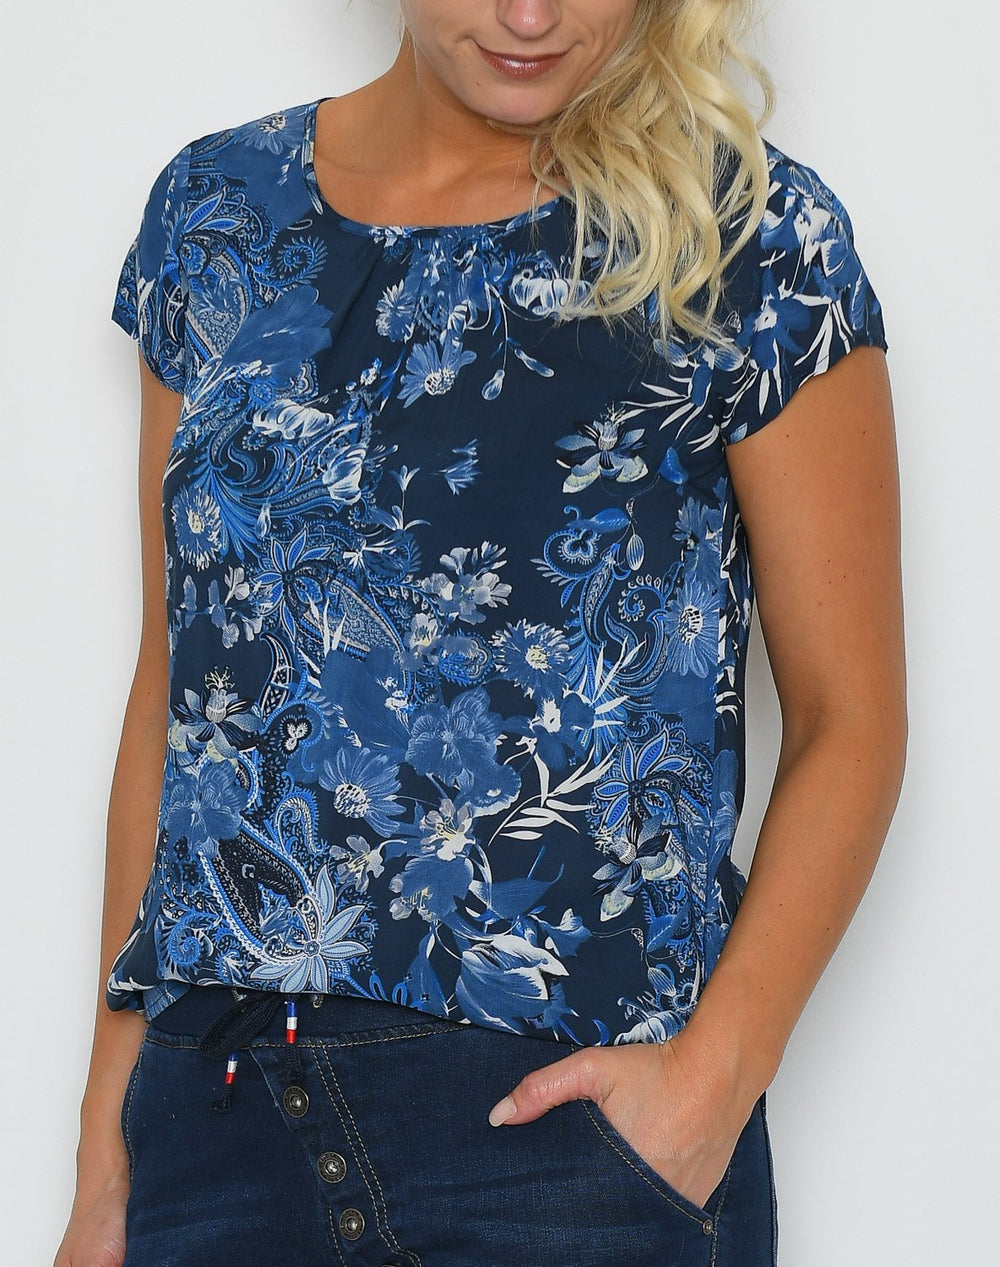 Soya Isabea 1 t-shirt blue mix - Online-Mode